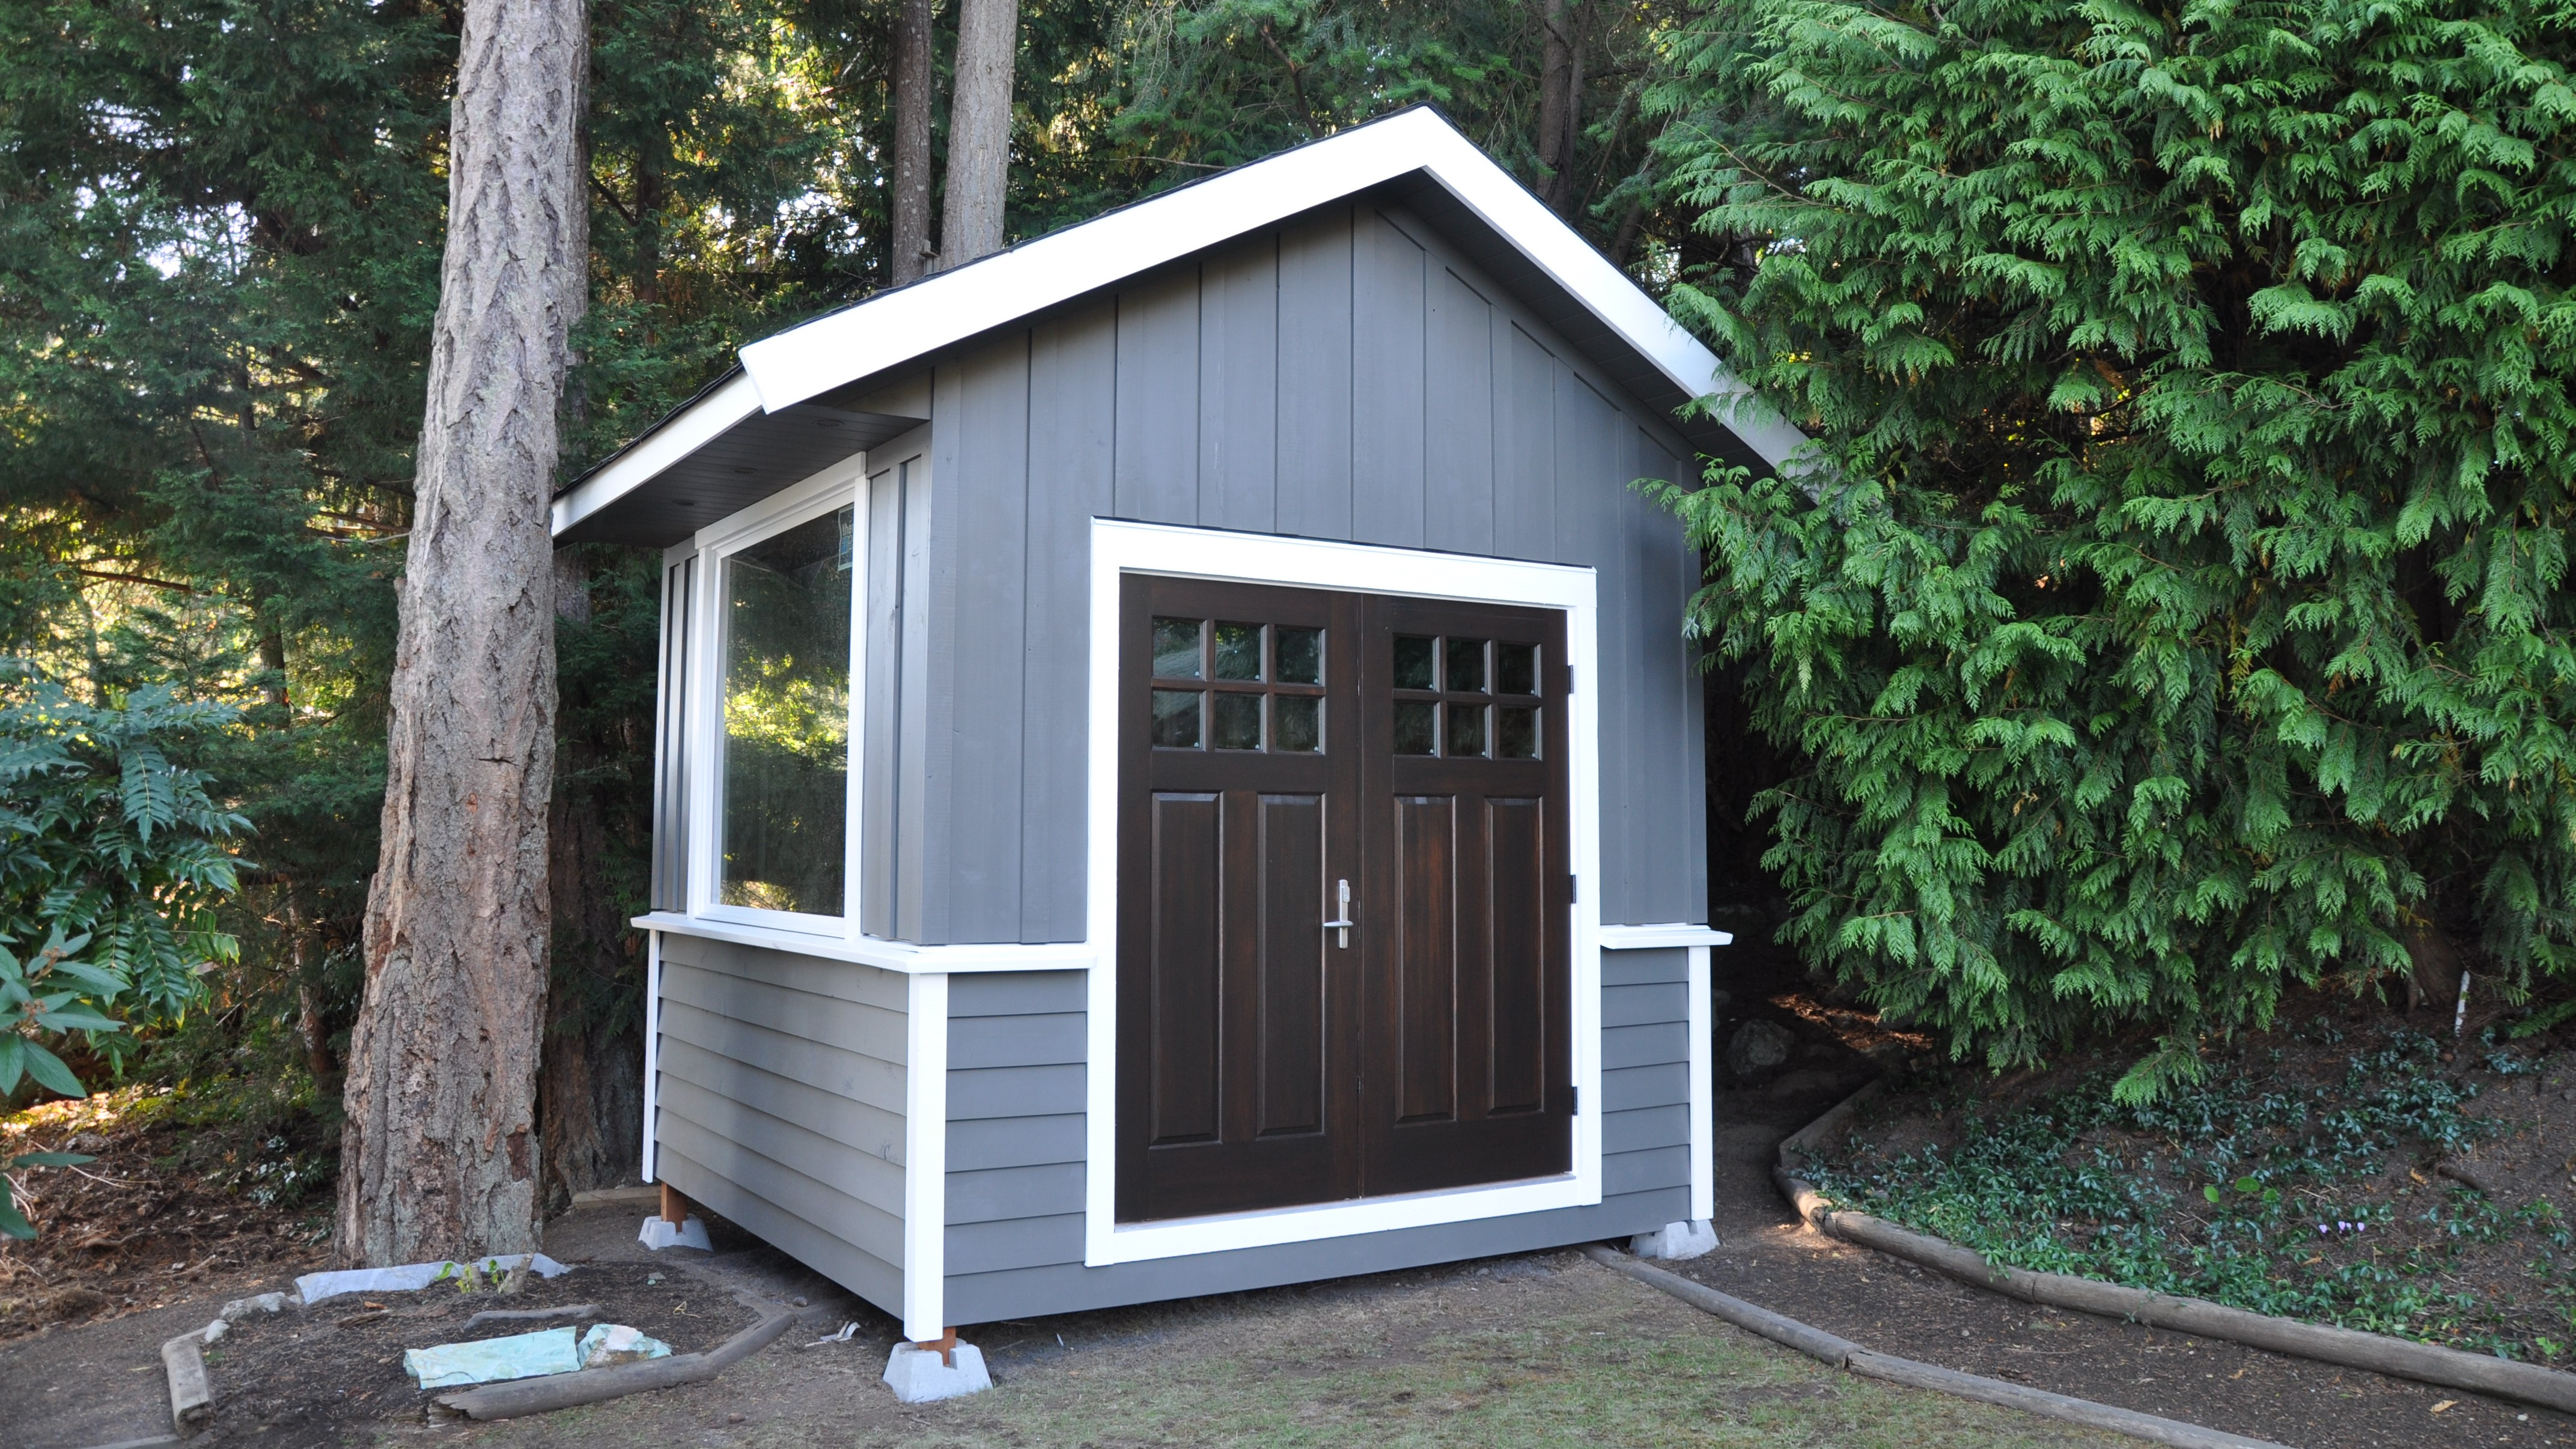 Emperor Homes Ltd - Bare Point Custom Renovation Phase 2 - She Shed 1